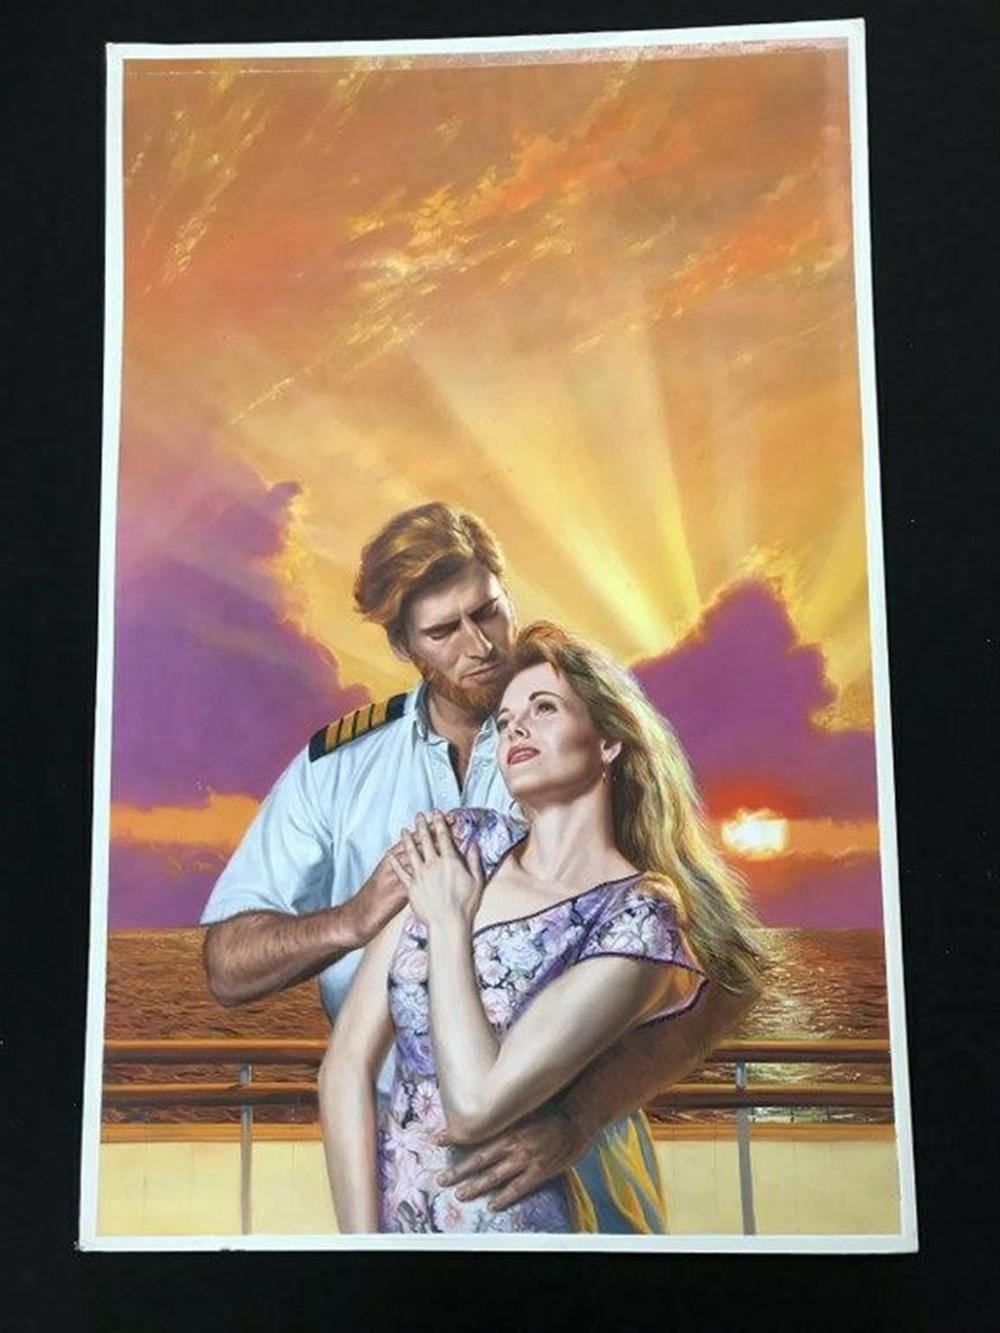 "ORIGINAL ROMANCE NOVEL COVER ILLUSTRATION, FROM COLLECTION WE ARE SELLING, UNSIGNED, LOOKS IN THE MANNER OF BARNETT PLOTKIN, ARTIST BOARD MEASURES 37"" X 24""."